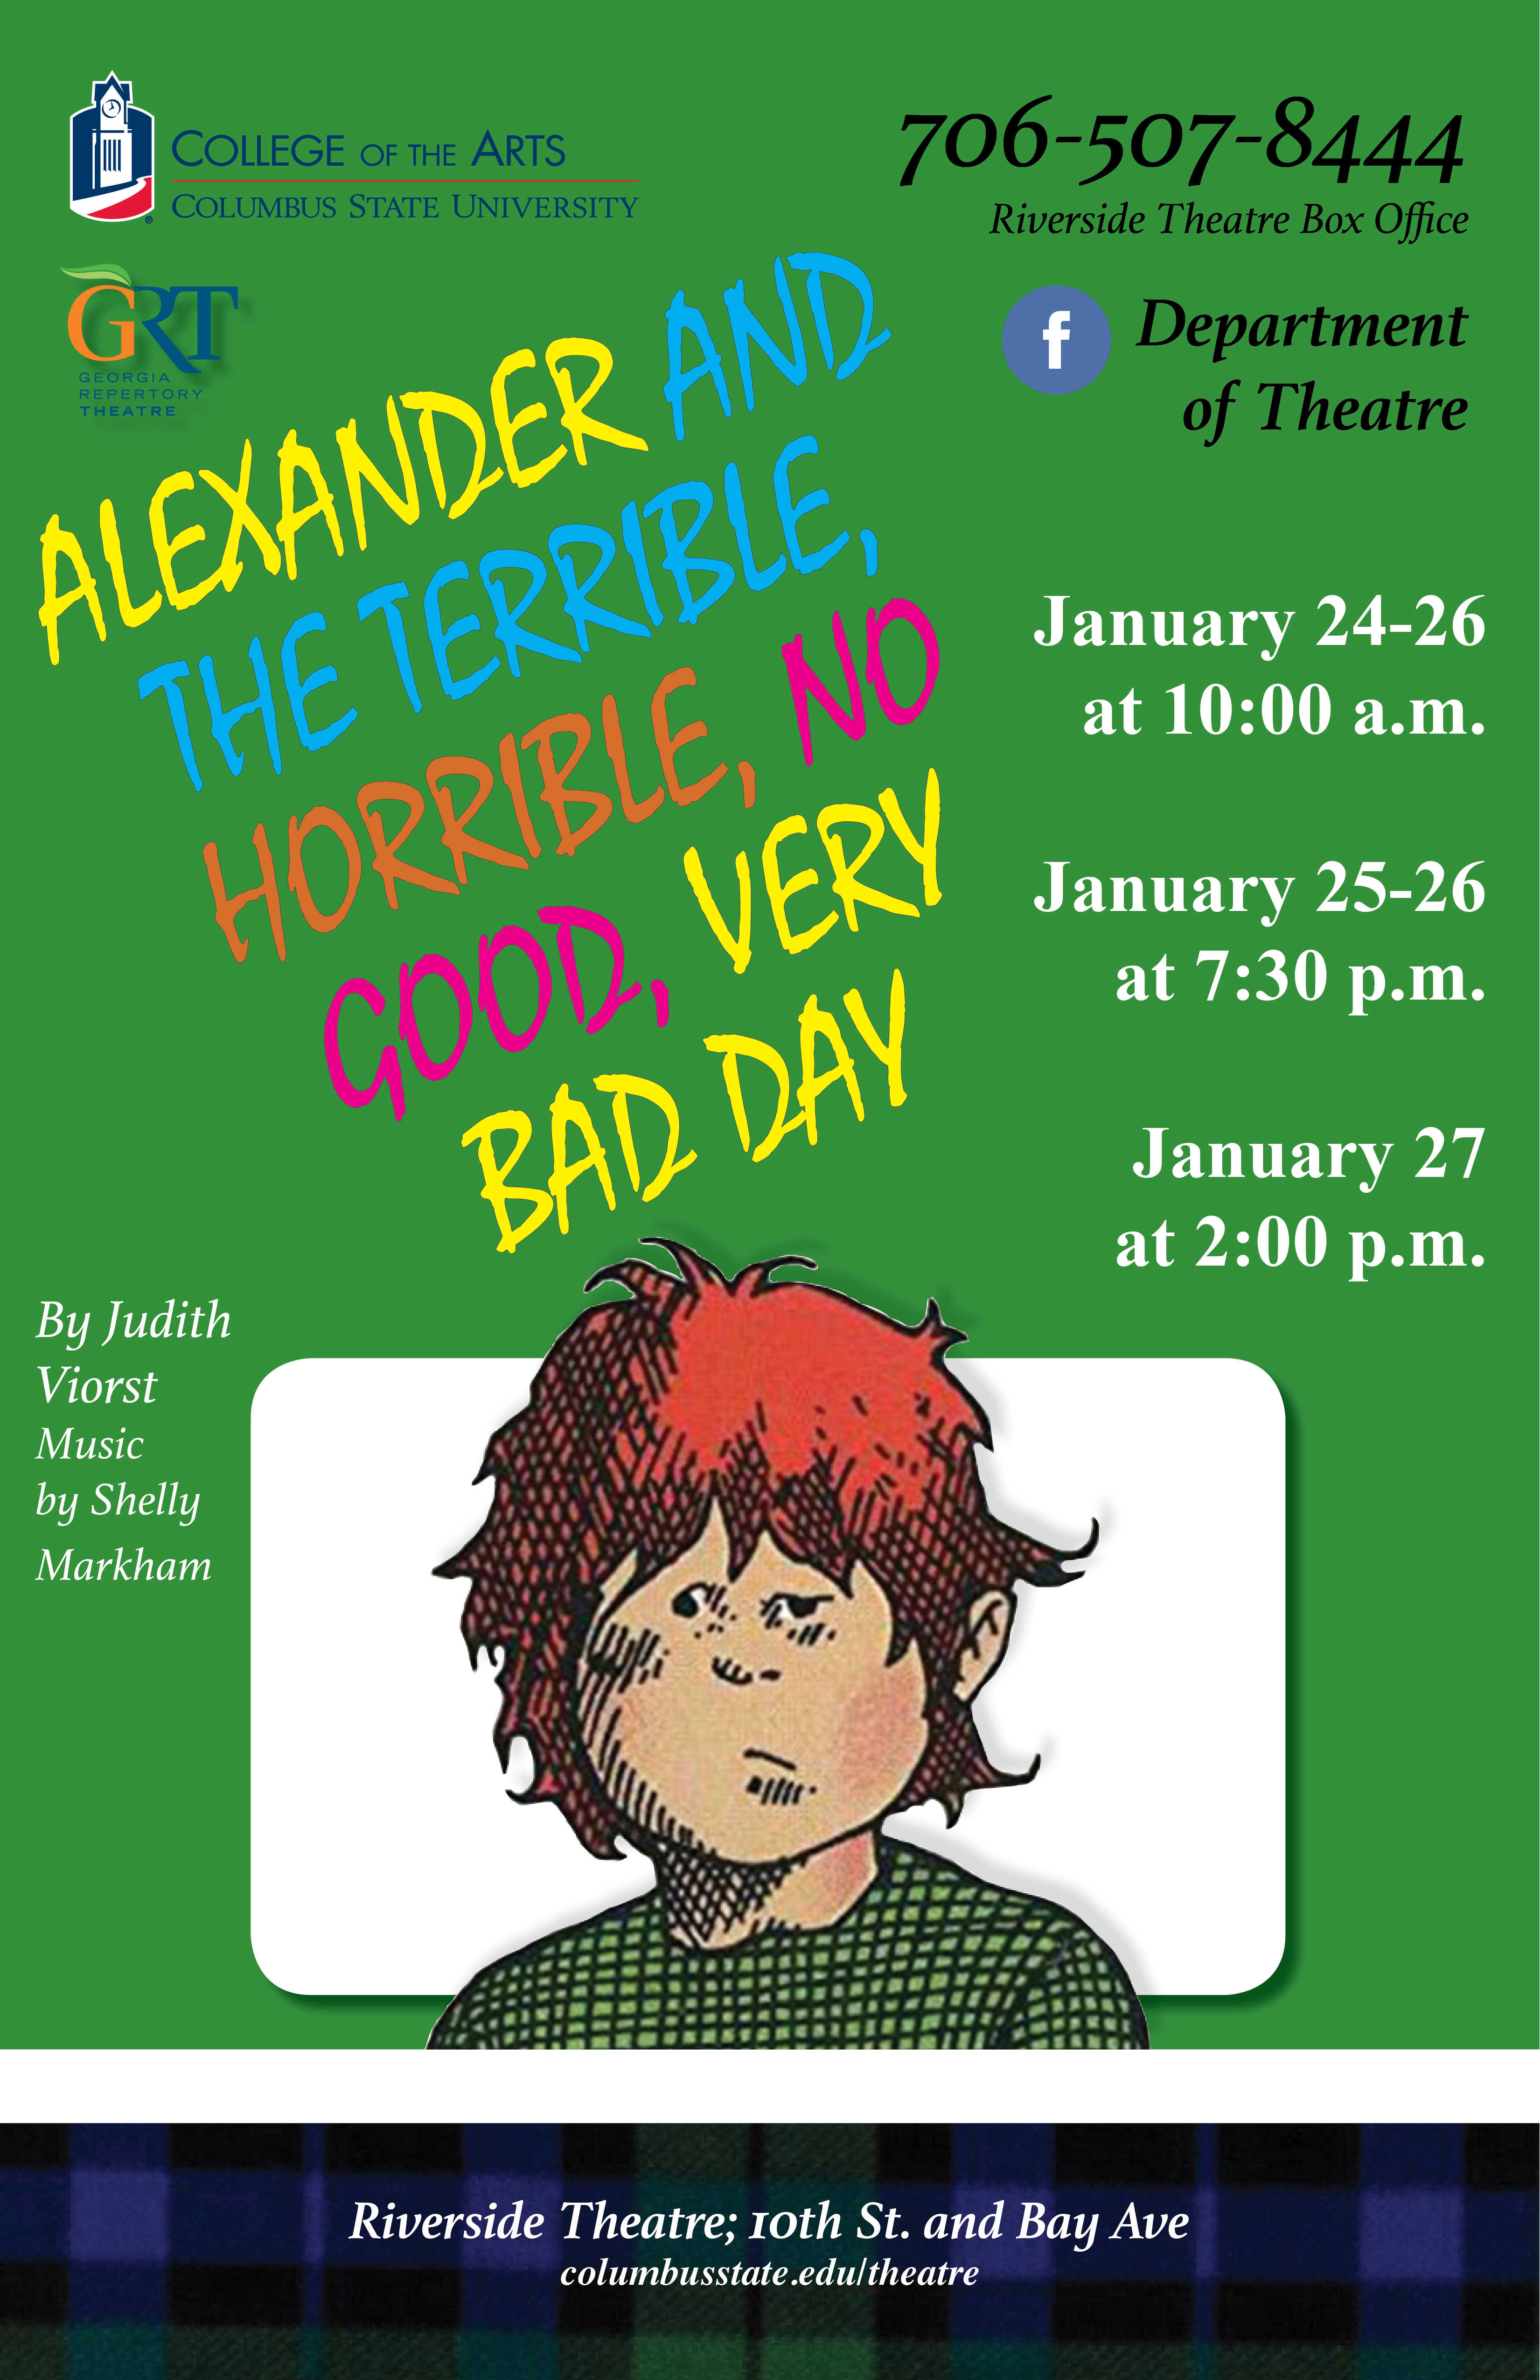 CSU Theatre: Alexander and the Terrible, Horrible, No Good, Very Bad Day